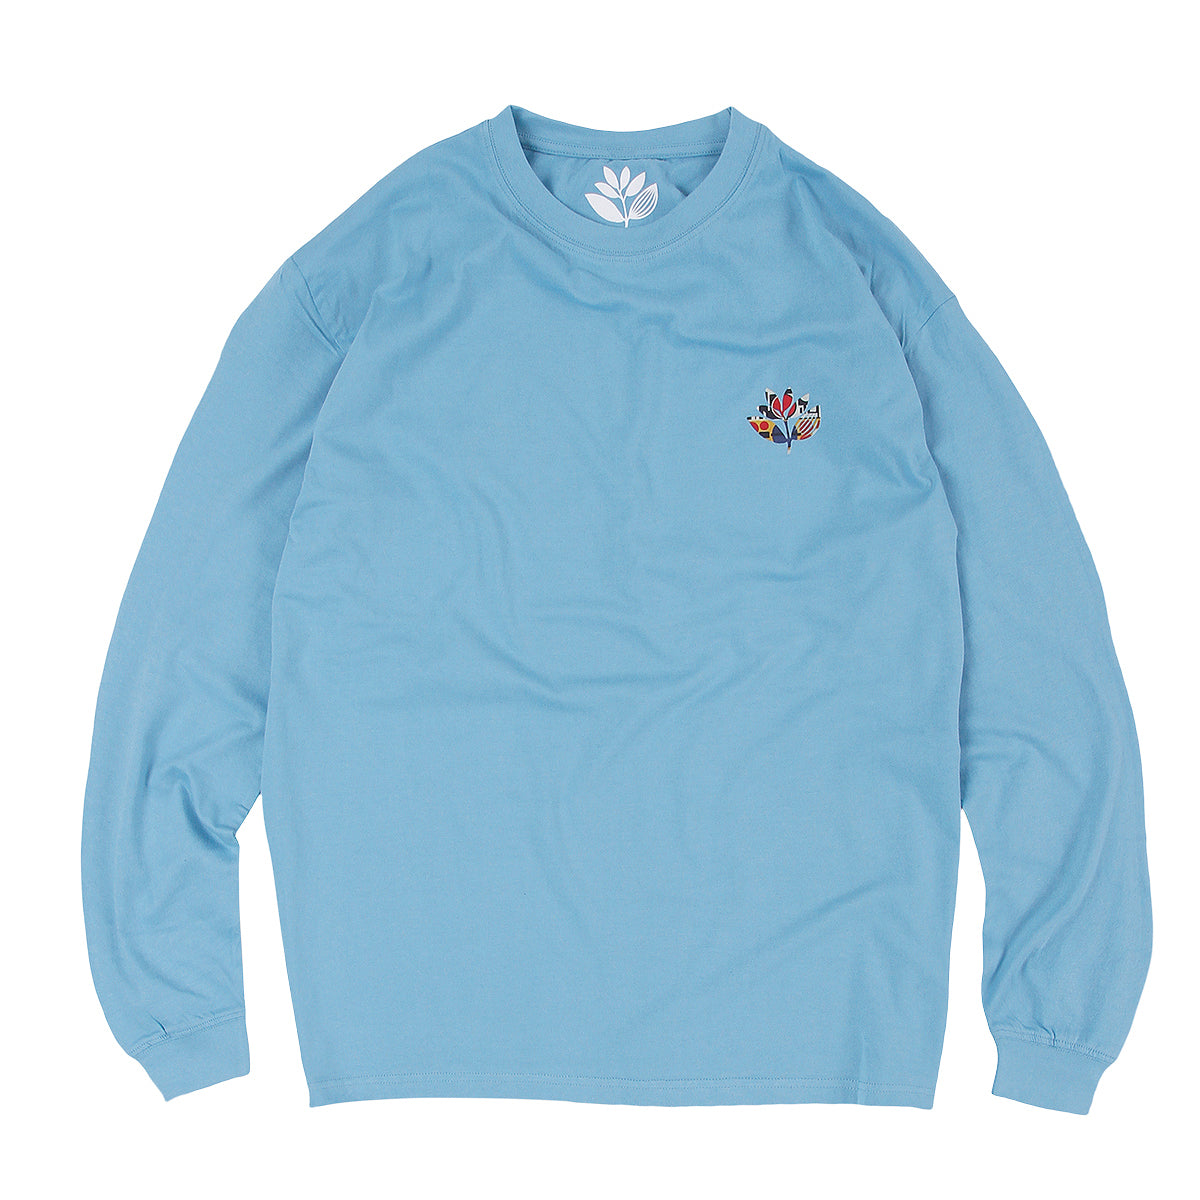 "MAGENTA SKATEBOARDS - Shapes Plant L/S Tee ""Light Blue"""